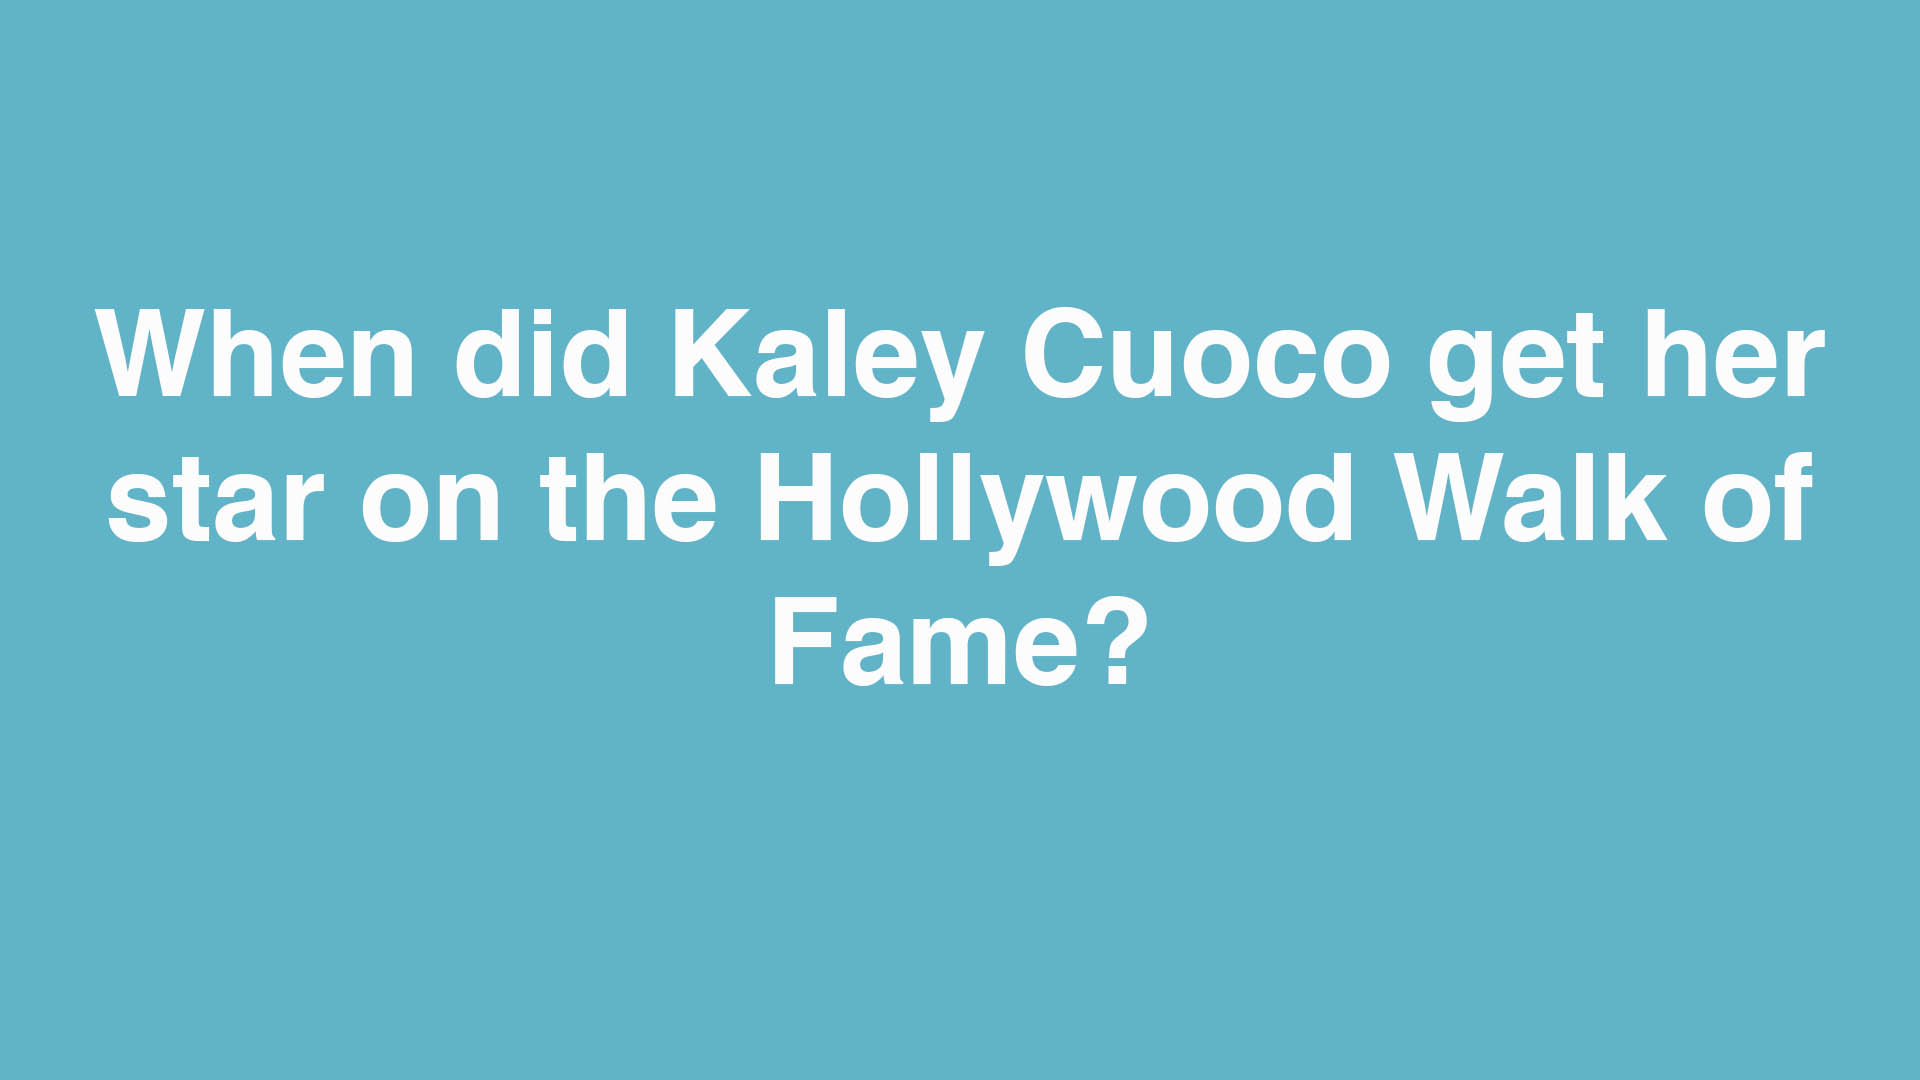 When did Kaley Cuoco get her star on the Hollywood Walk of Fame?